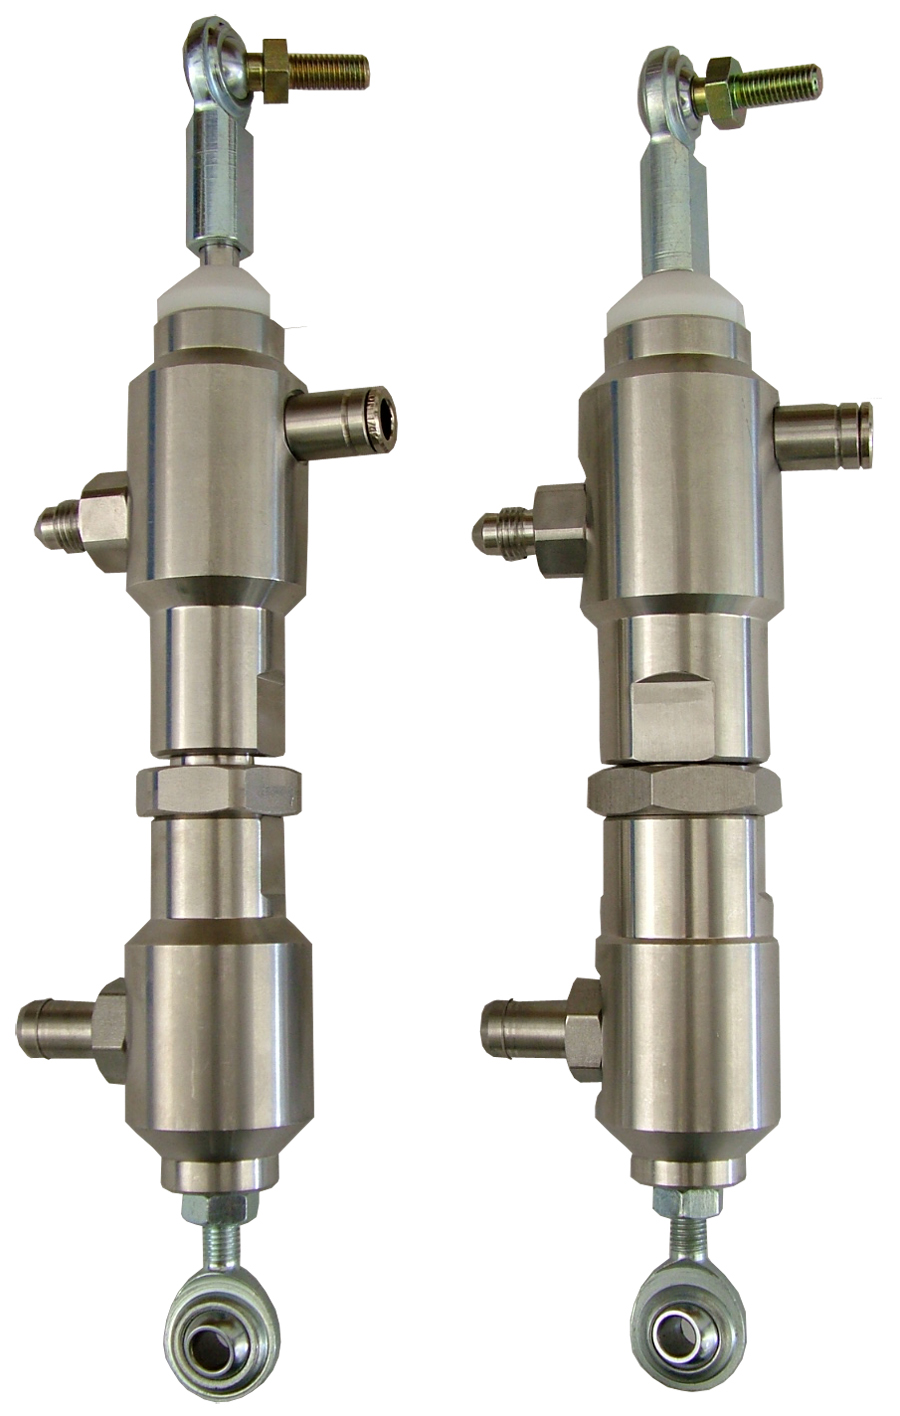 View Videos for Catalyst Pumps